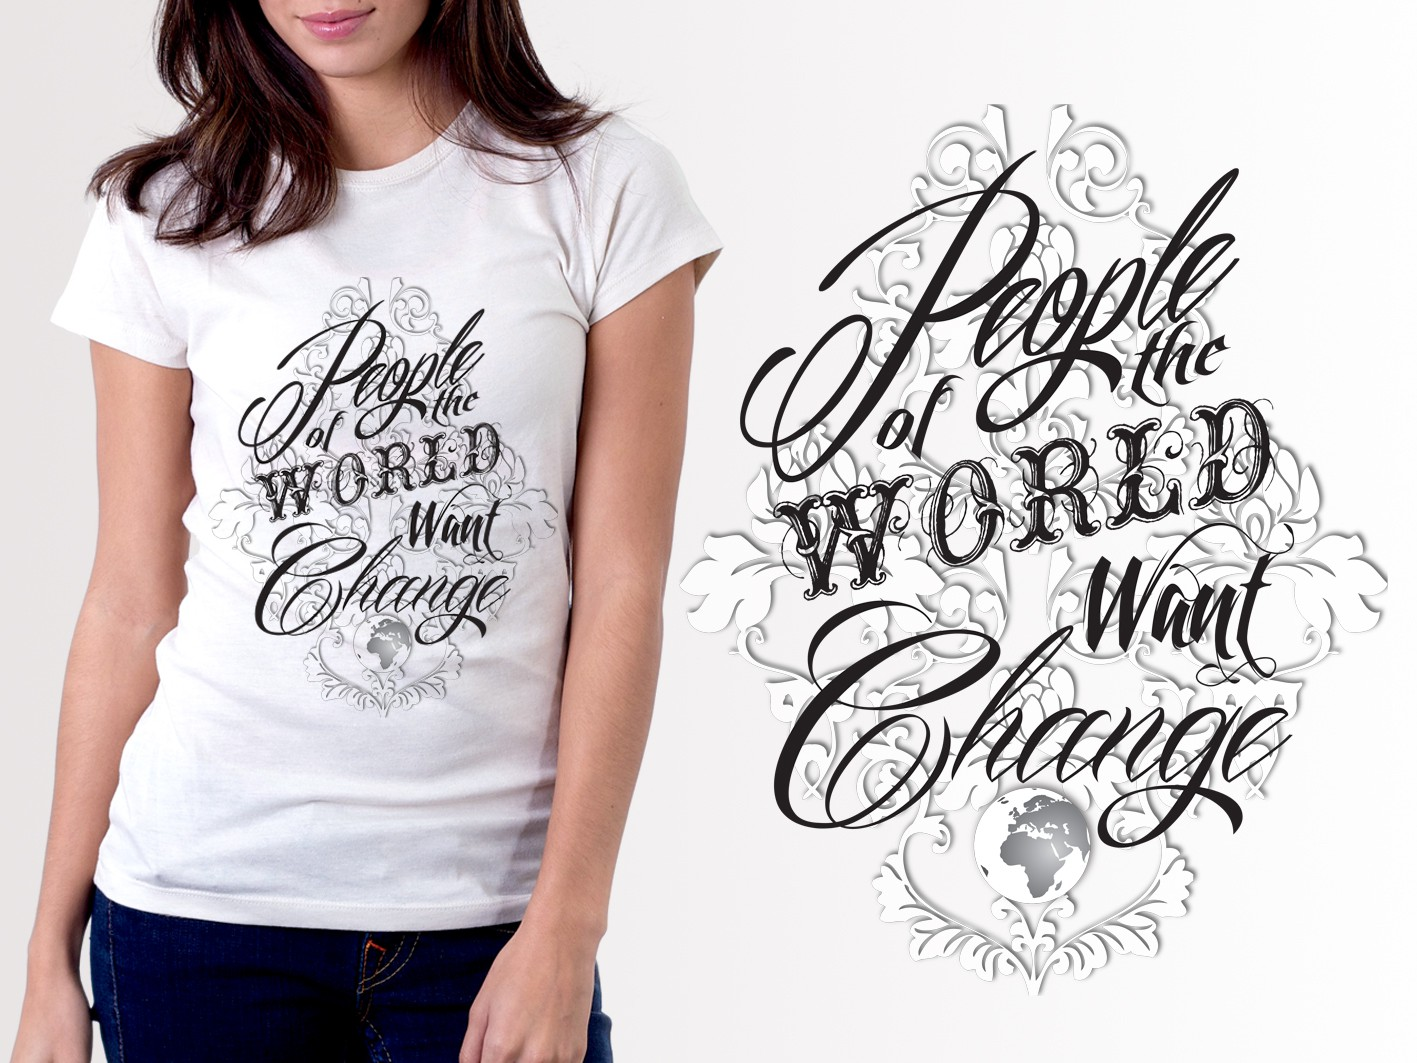 T-shirt contest: T-shirt promoting peaceful resistance